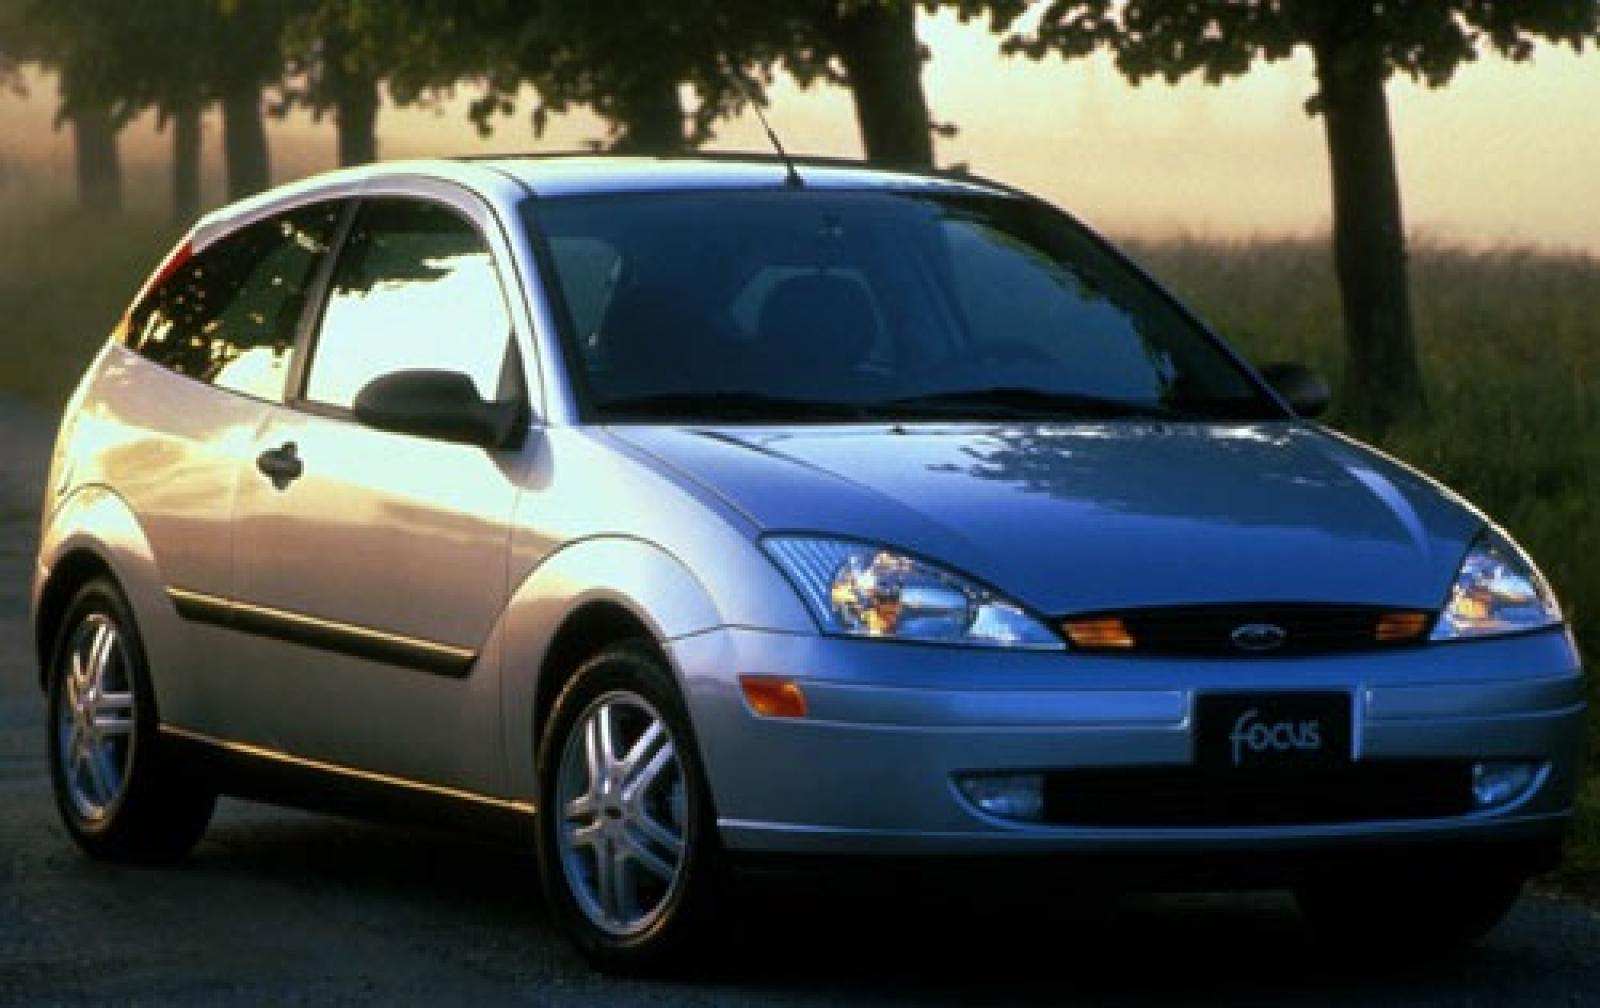 2003 Ford Focus Information And Photos Zombiedrive Zx3 Engine Diagram 800 1024 1280 1600 Origin